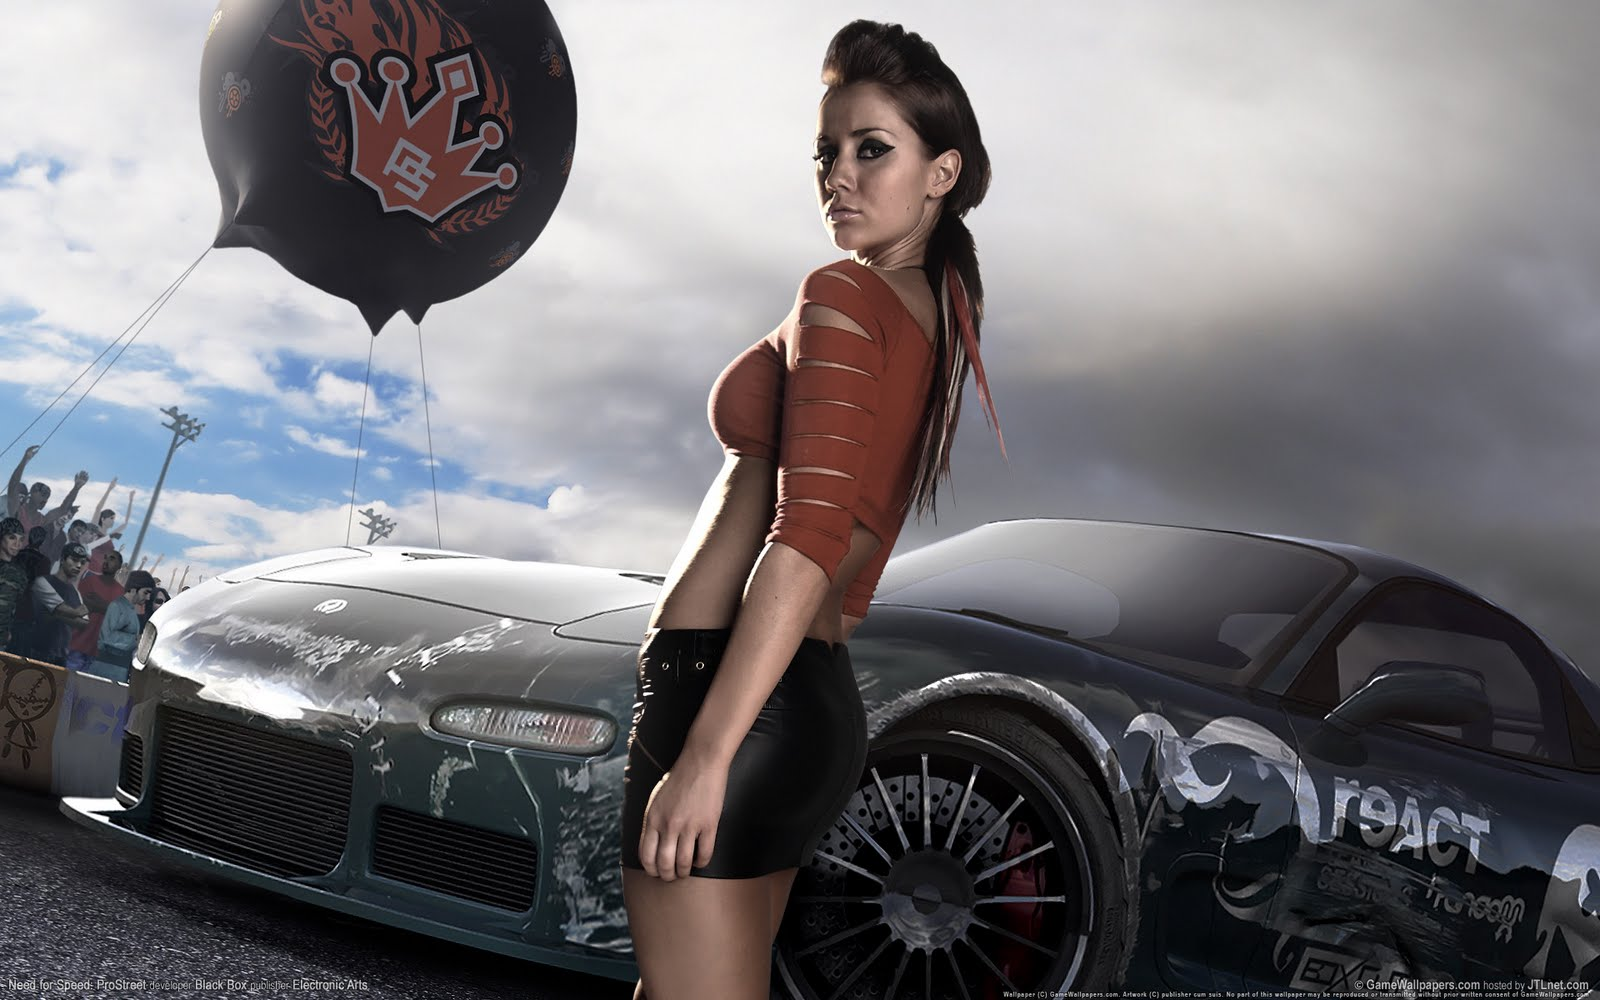 Need For Speed Wallpapers Most Wanted WallpaperAmericas LogoMost Viewed GirlsMost WallpapersMost PhotosBike